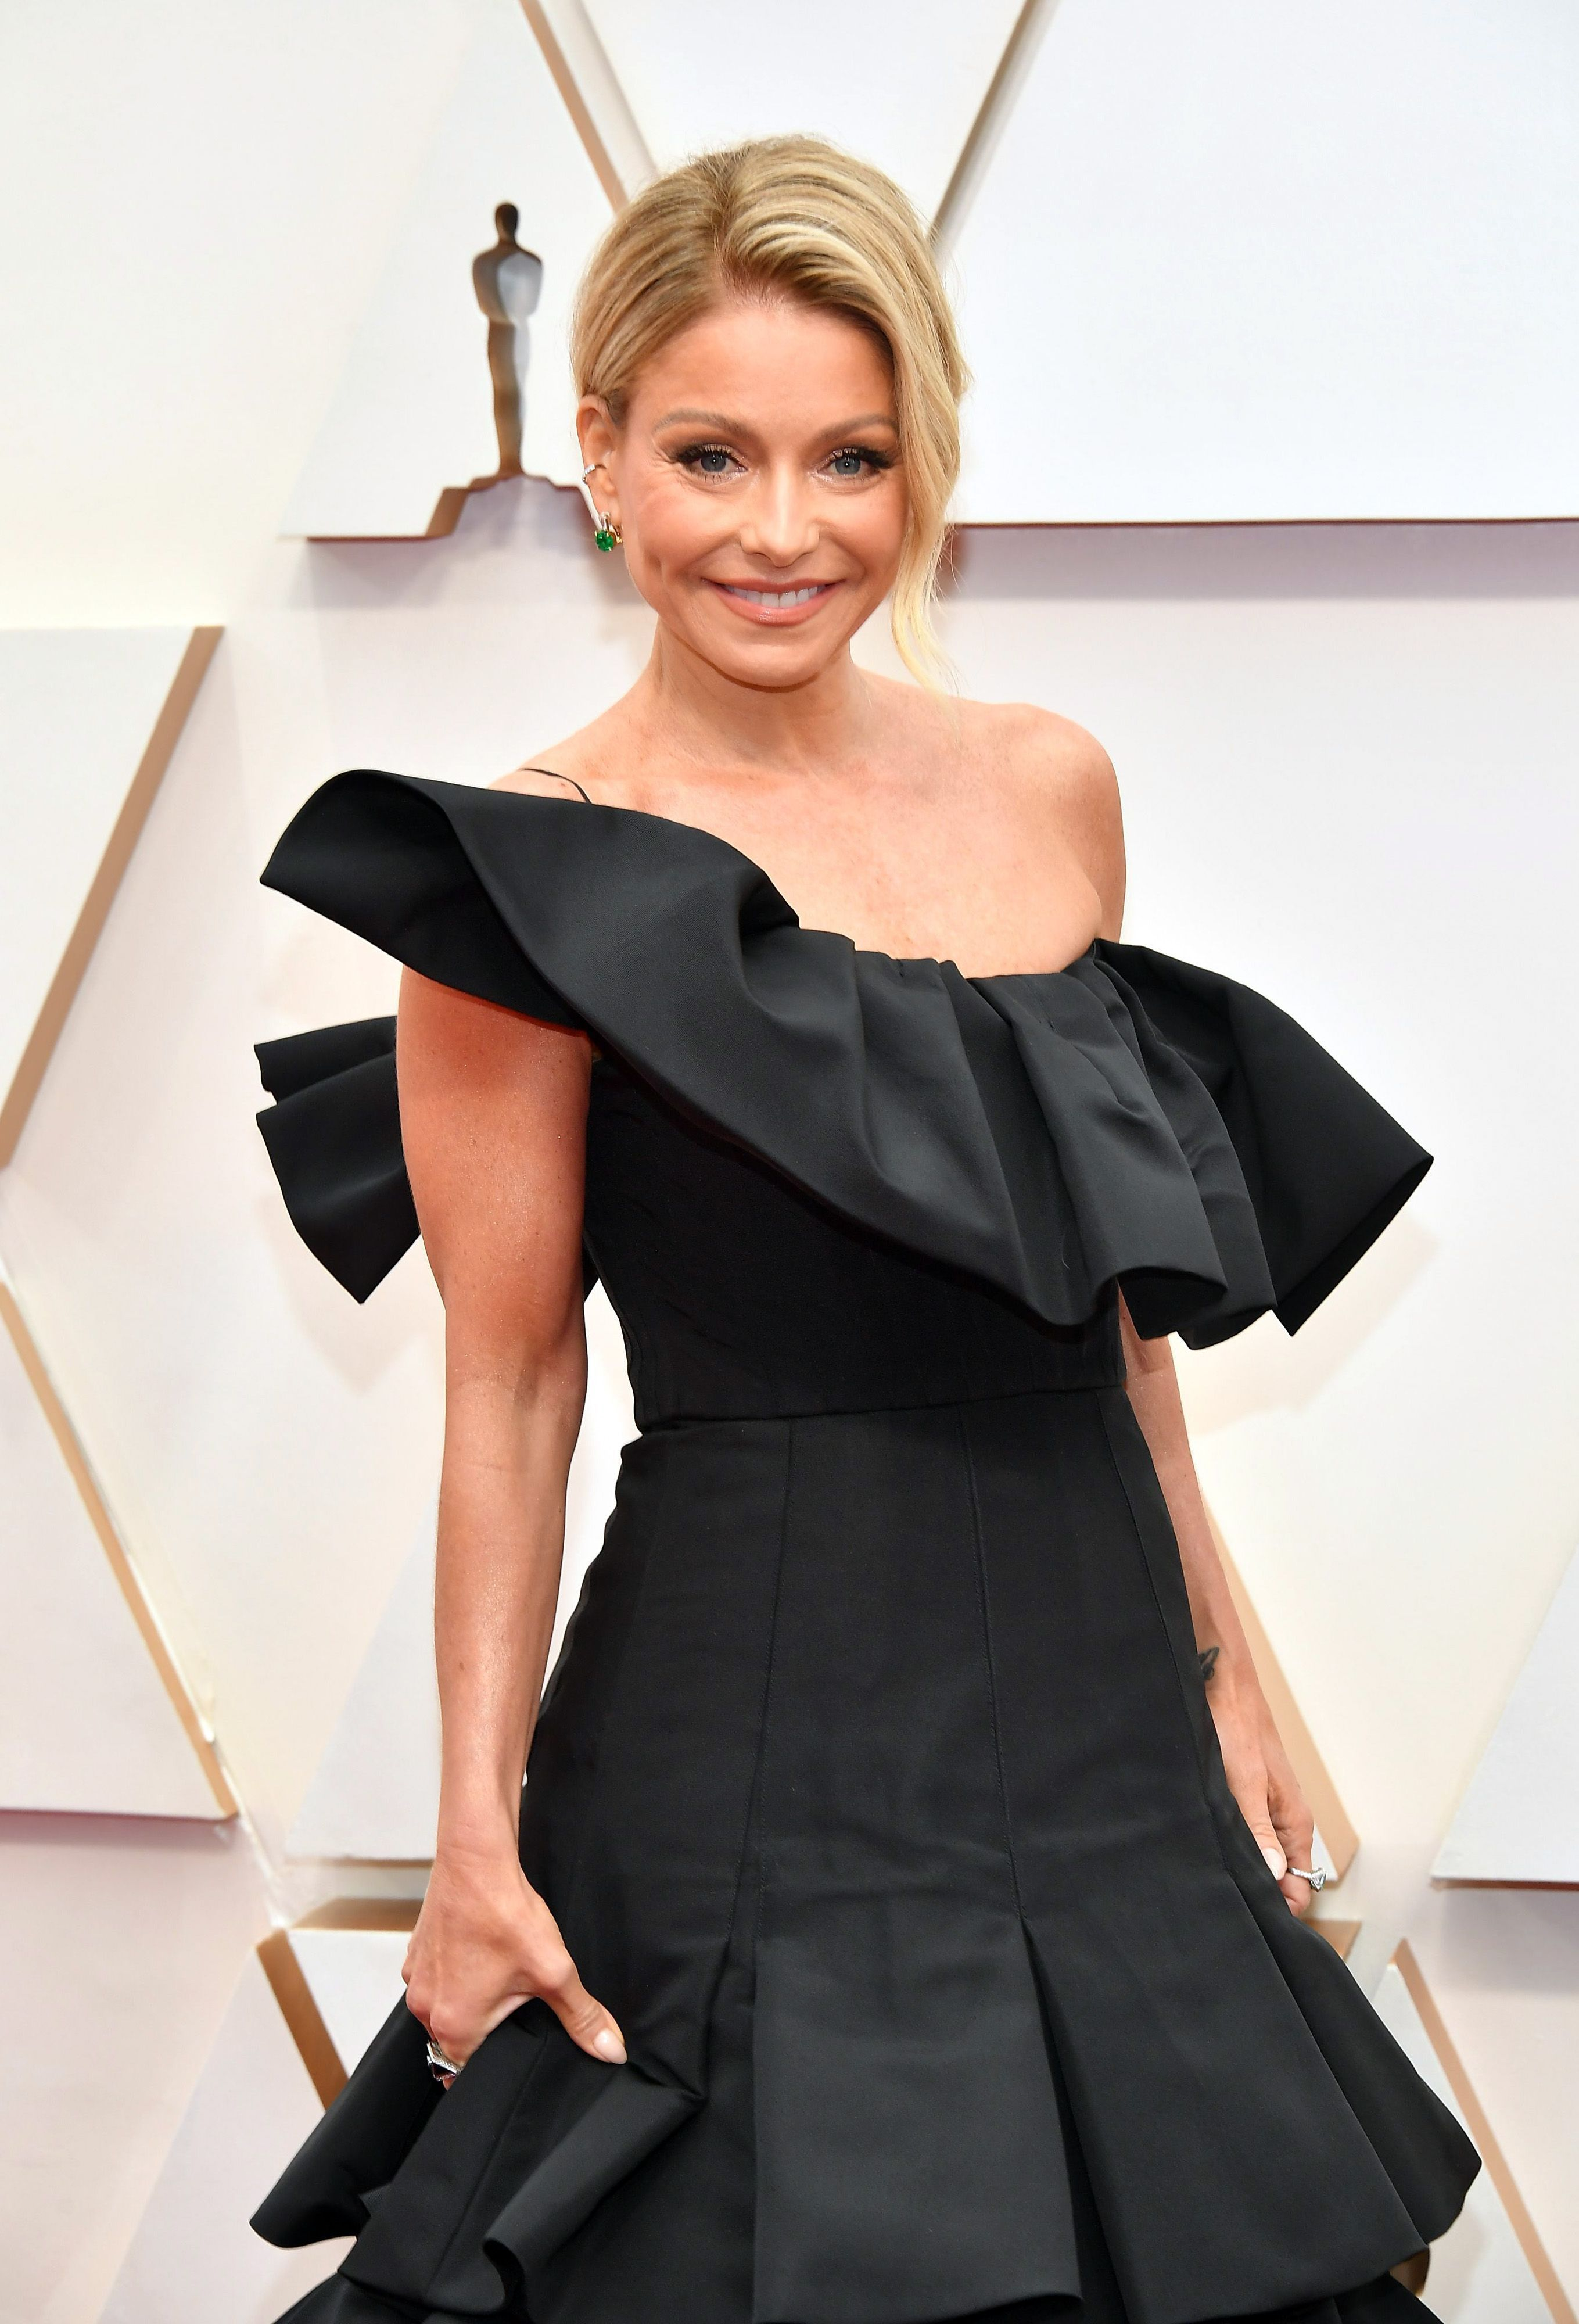 Kelly Ripa attends the 92nd Annual Academy Awards on February 09, 2020, in Hollywood, California. | Source: Getty Images.